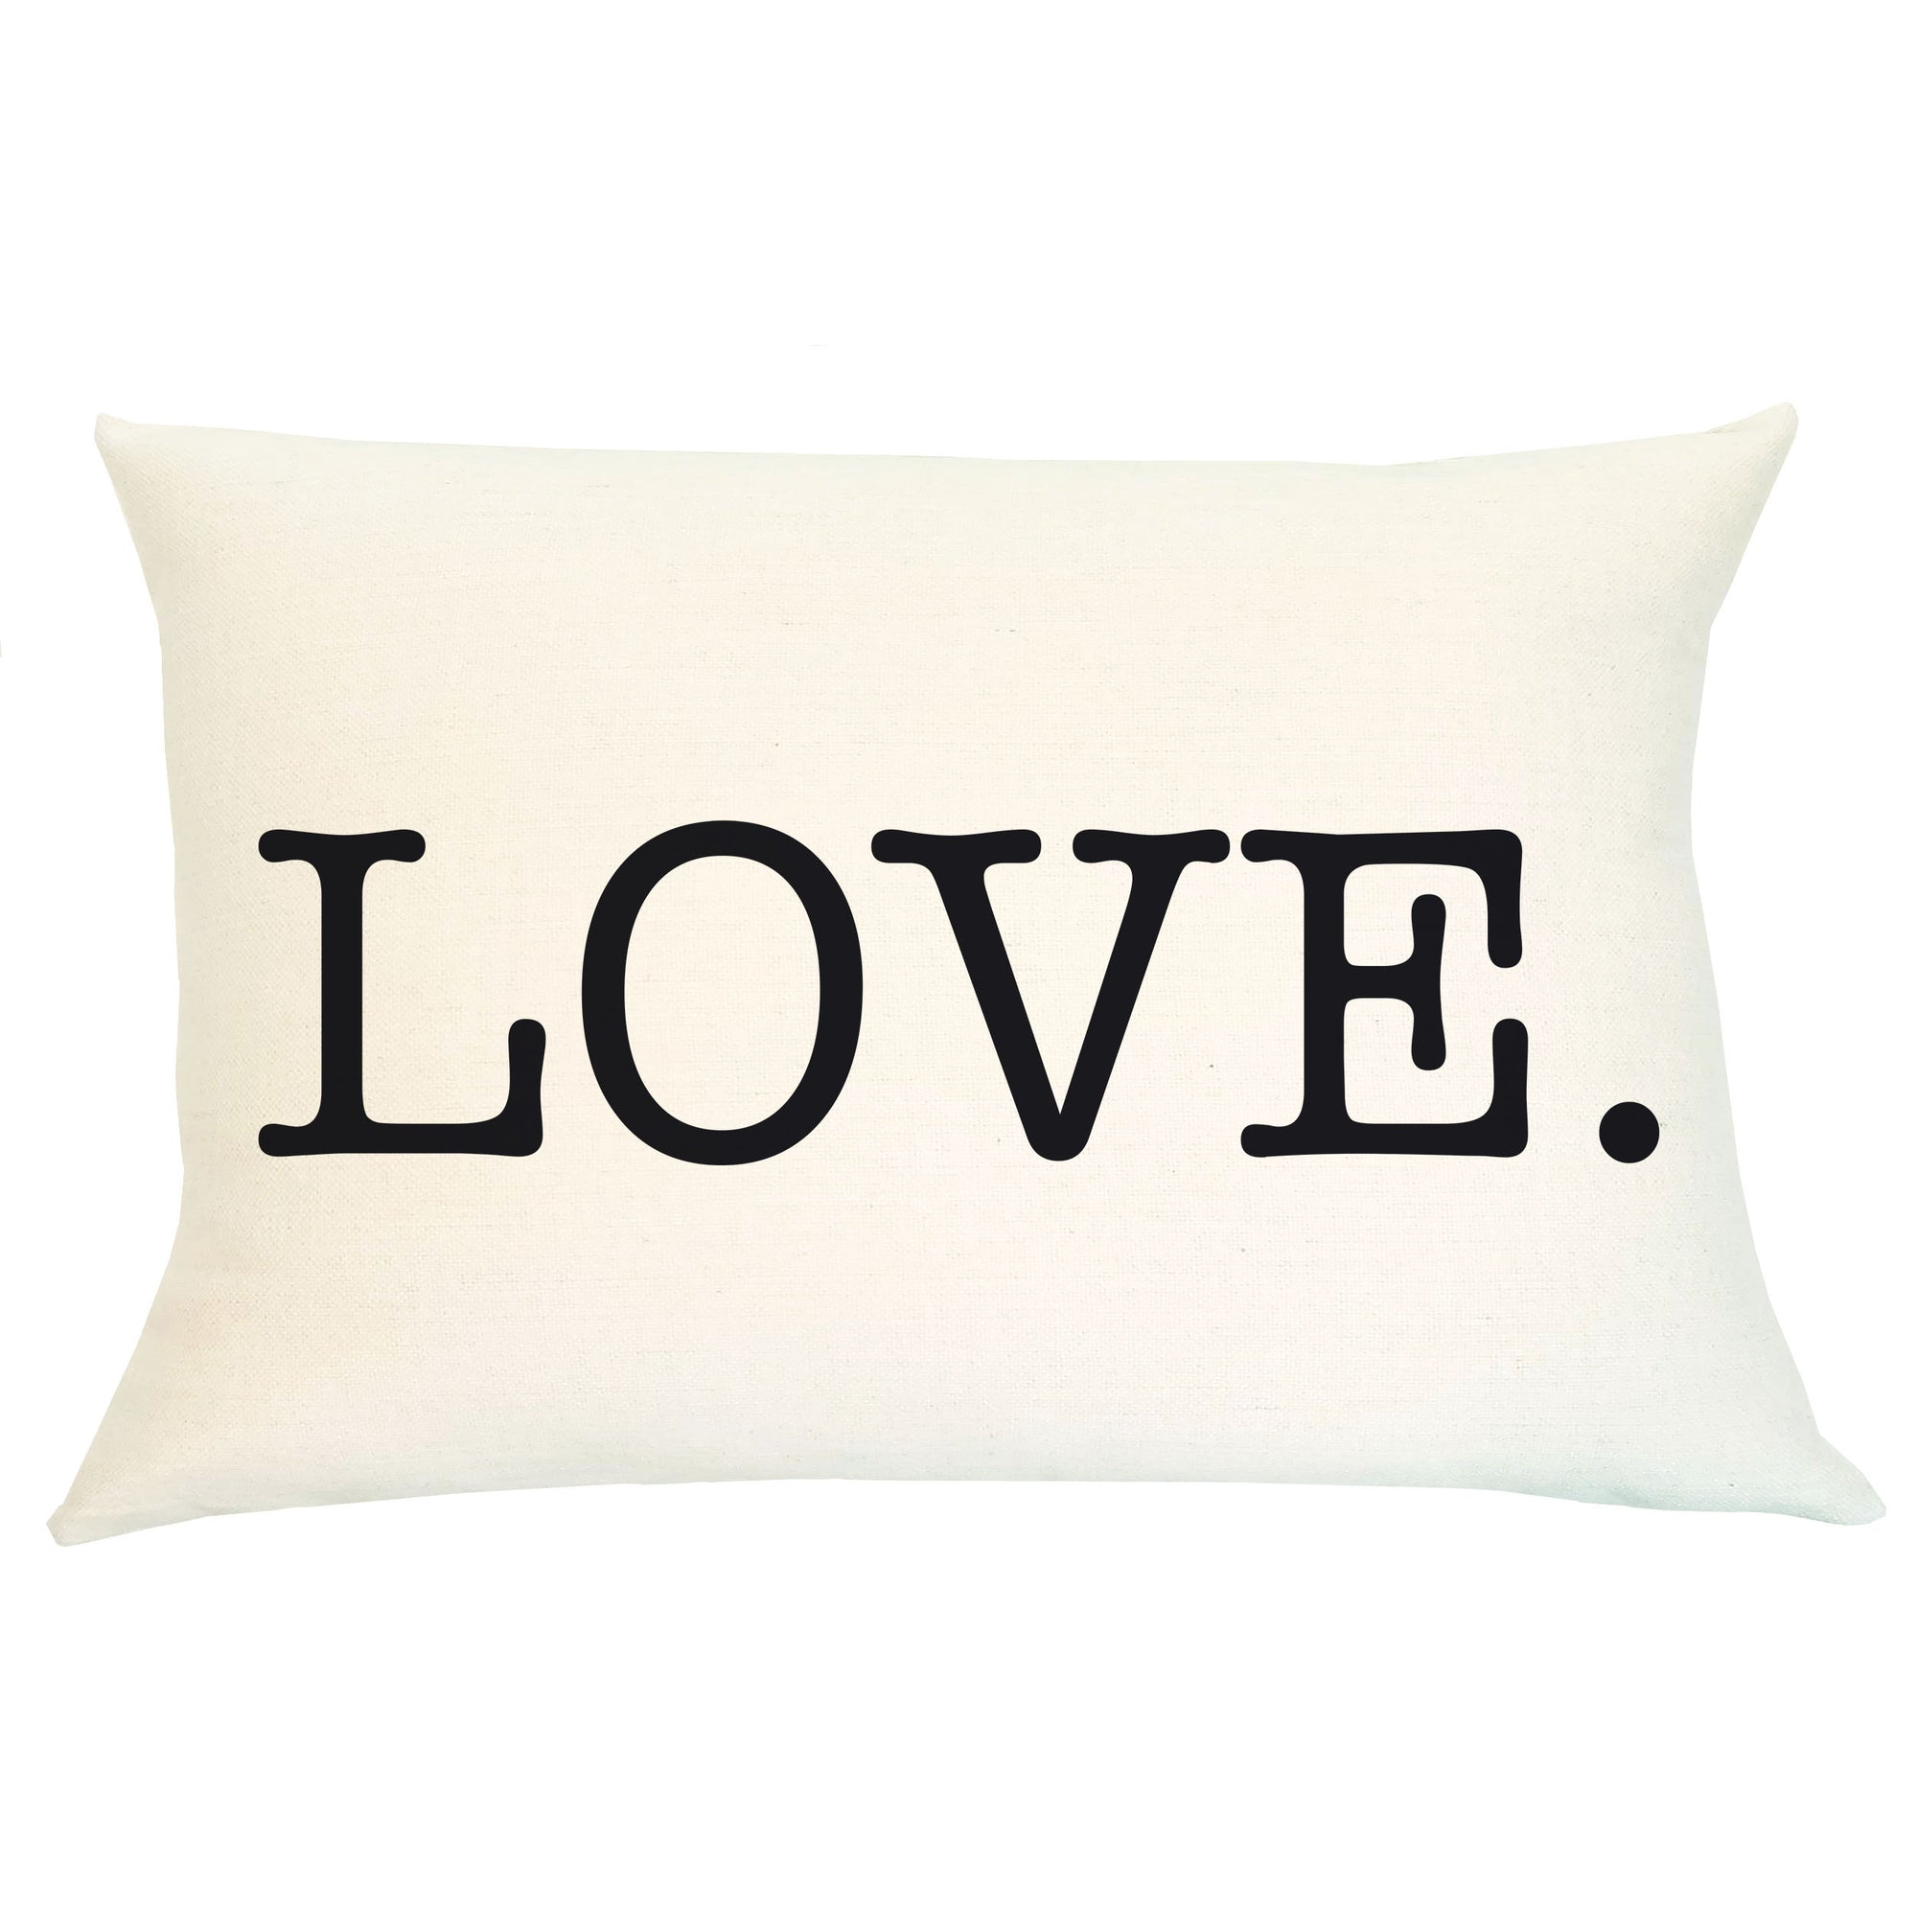 Pillow Lumbar - Love - Insert Included